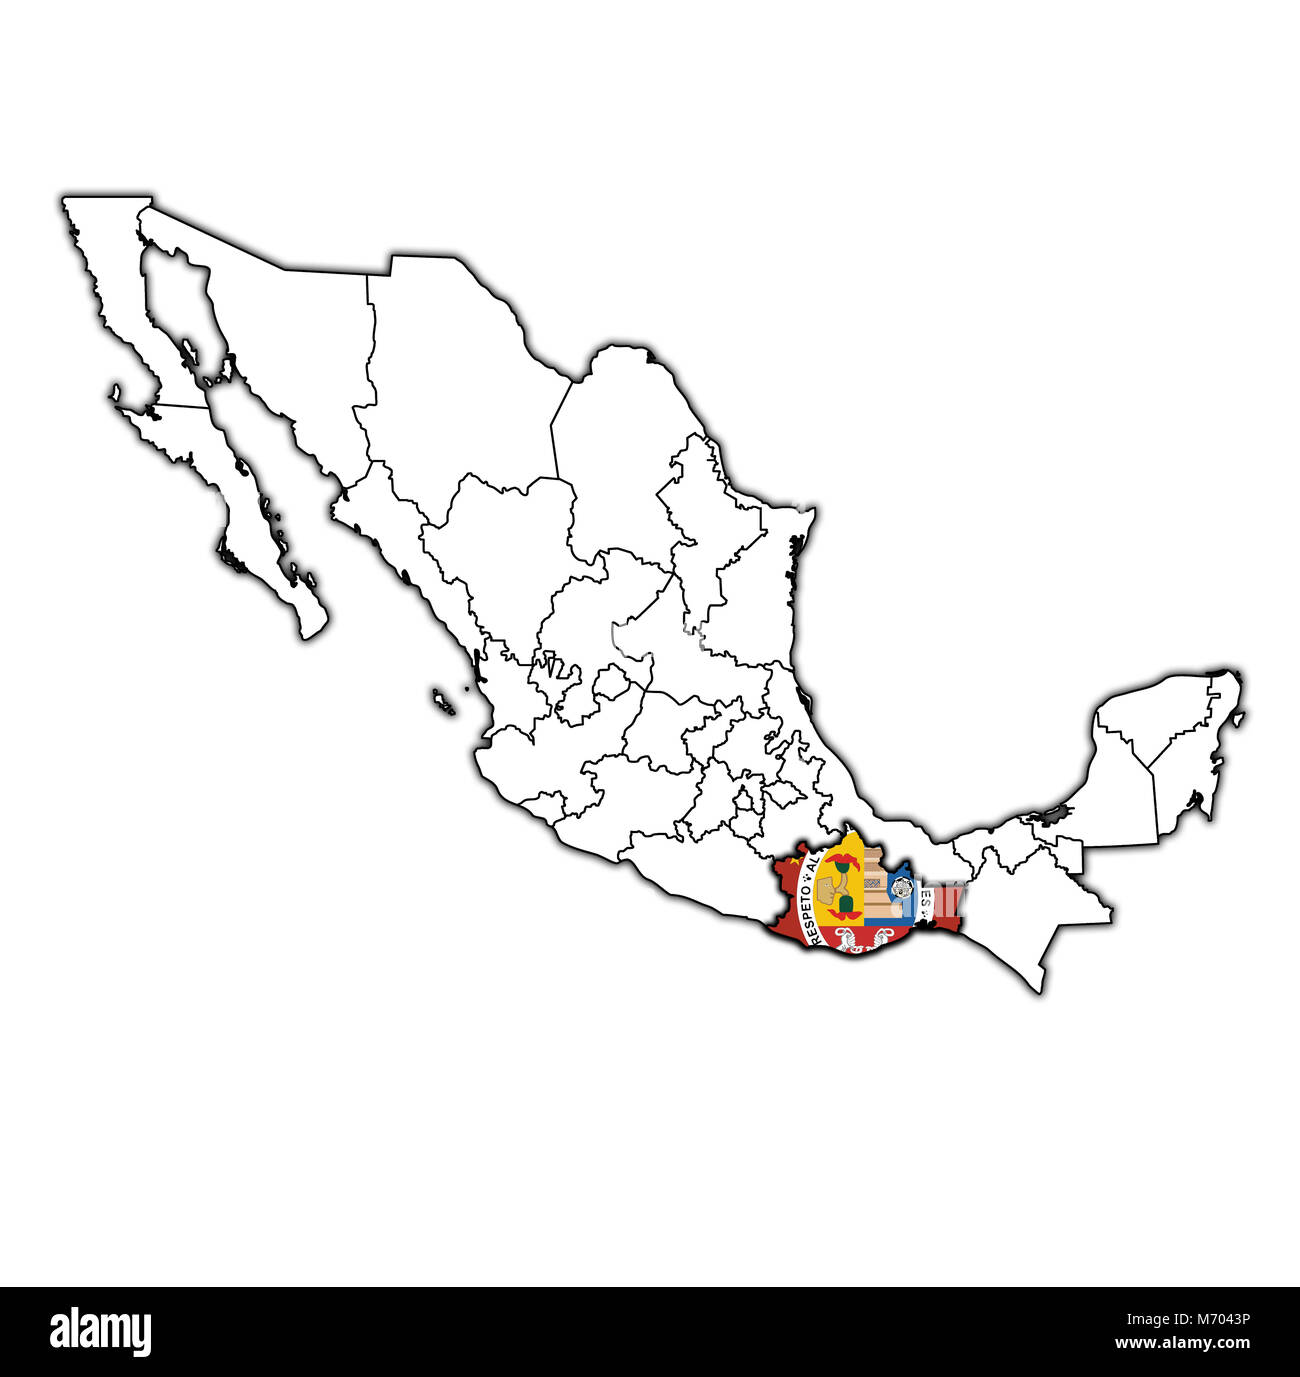 emblem of Oaxacaa state on map with administrative divisions and borders of Mexico - Stock Image